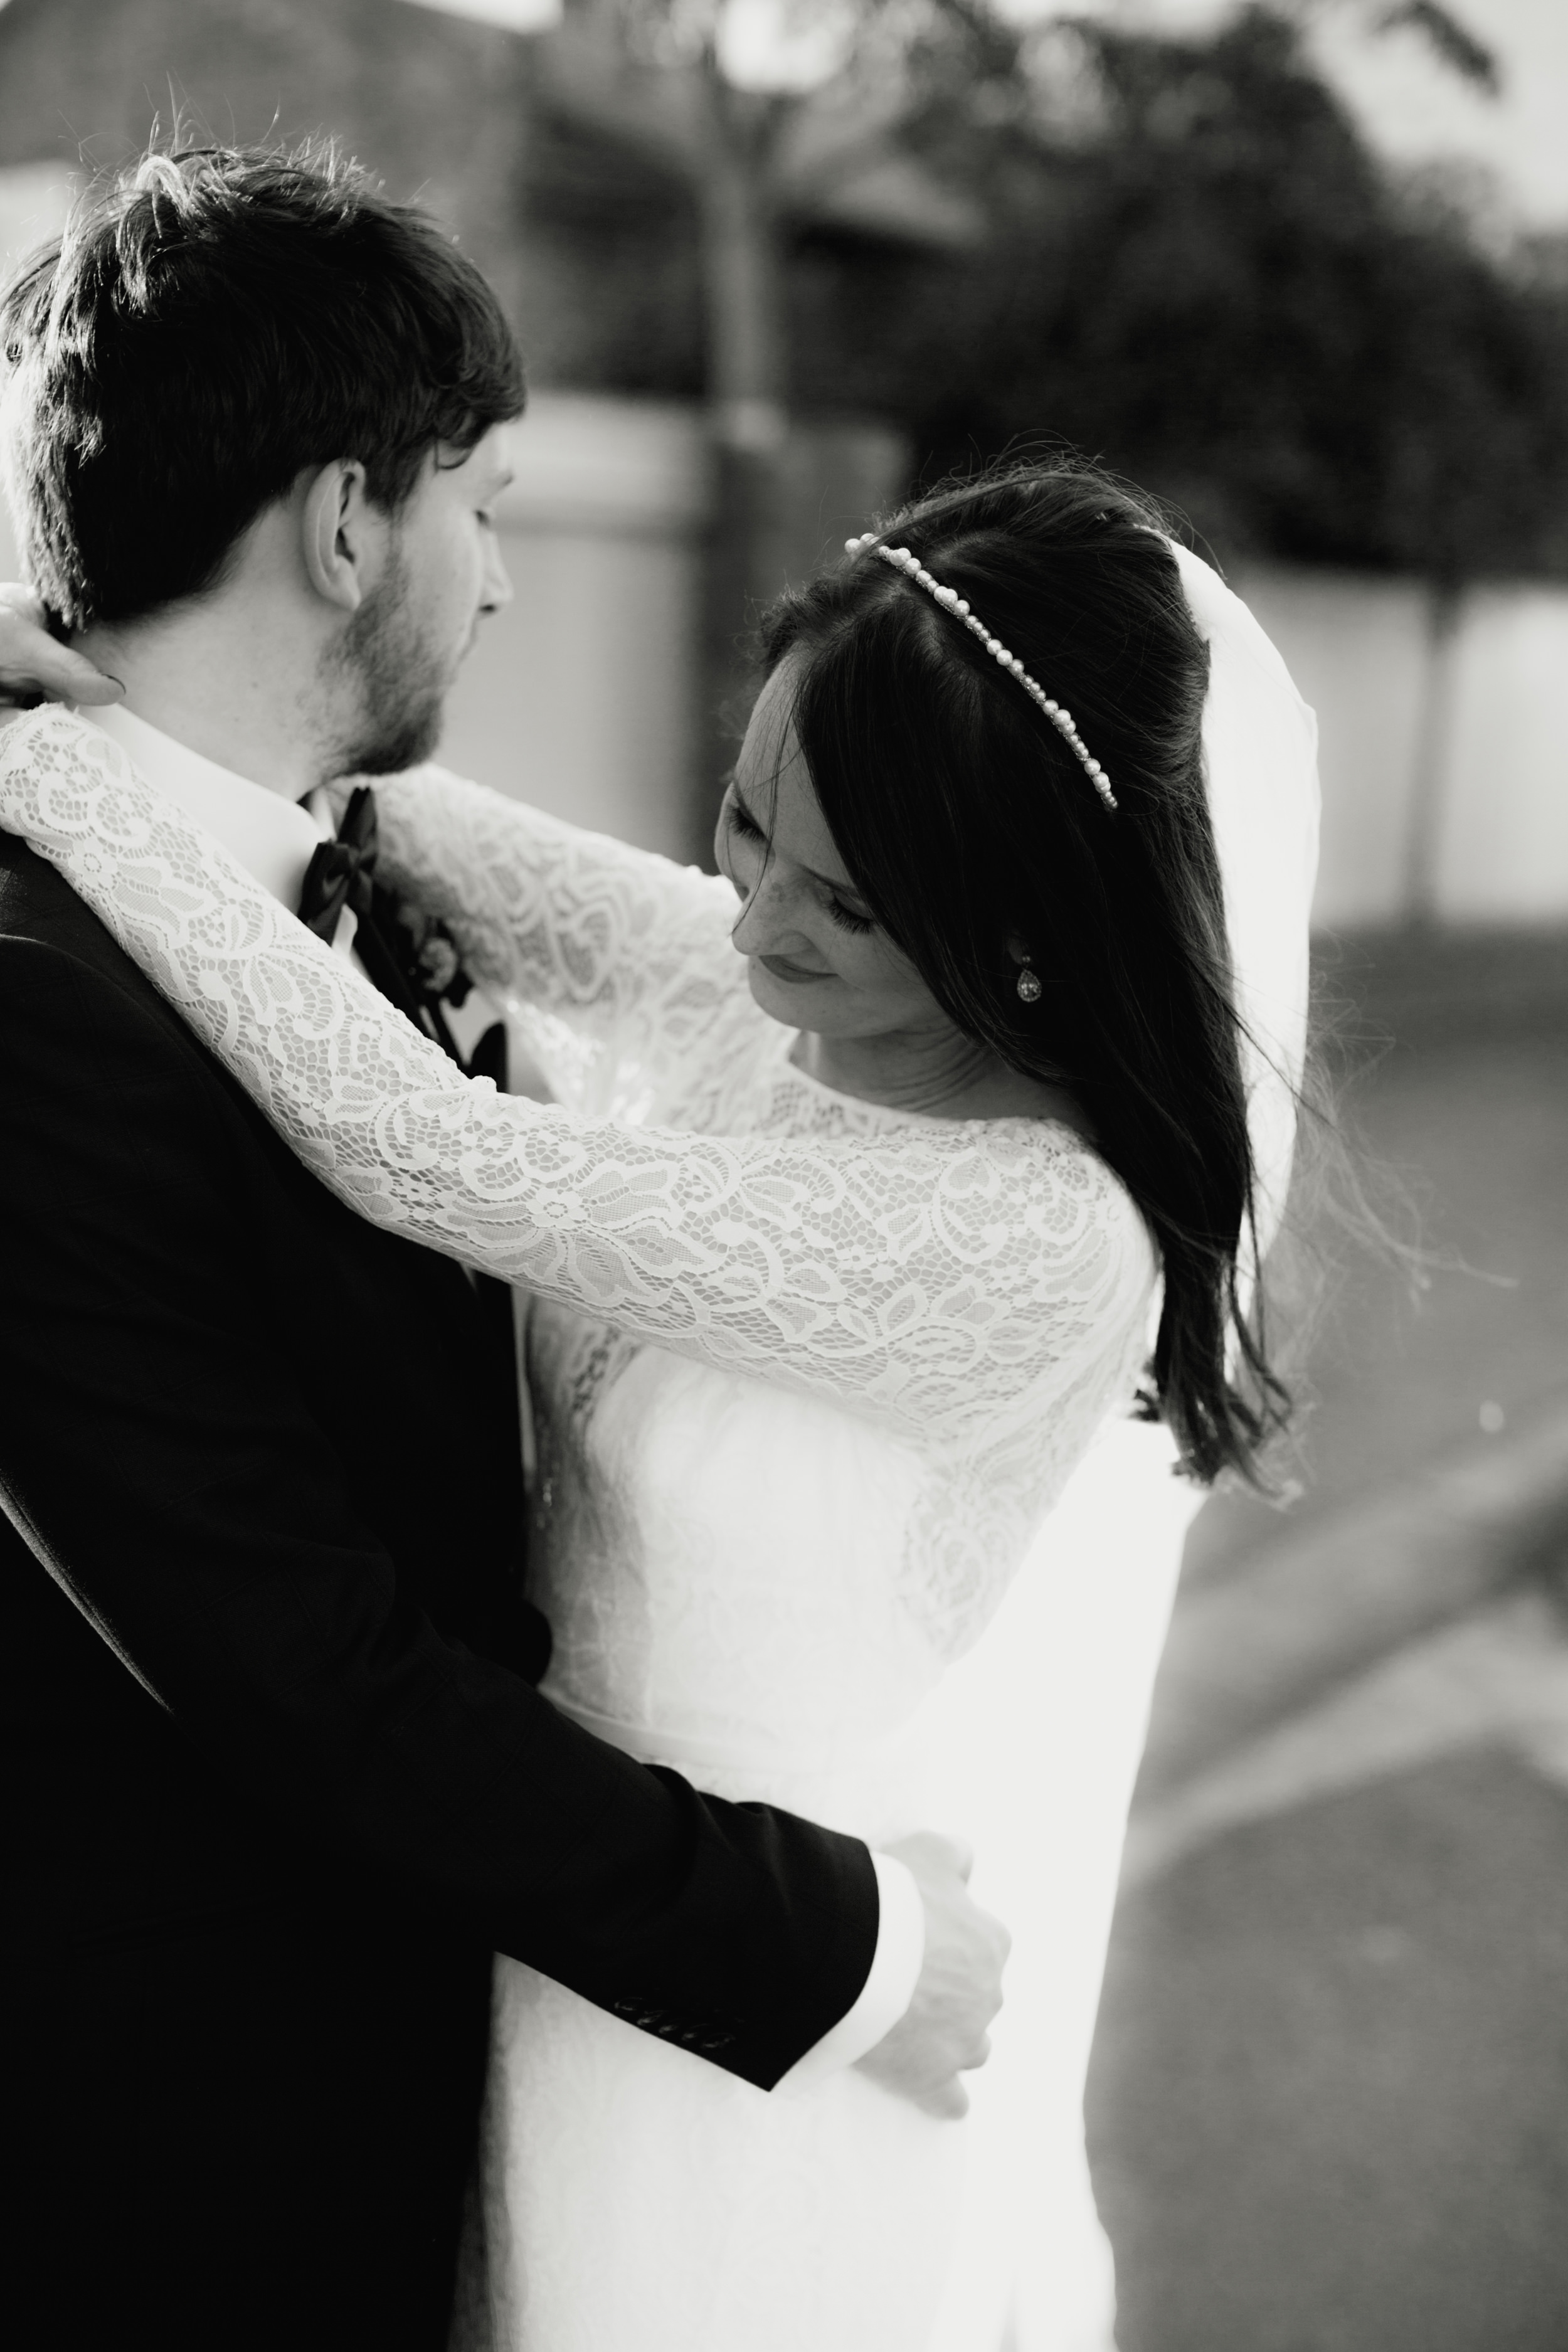 I_Got_You_Babe_Weddings_Emily_Matt_Rupert_Glasshaus_Melbourne0126.JPG